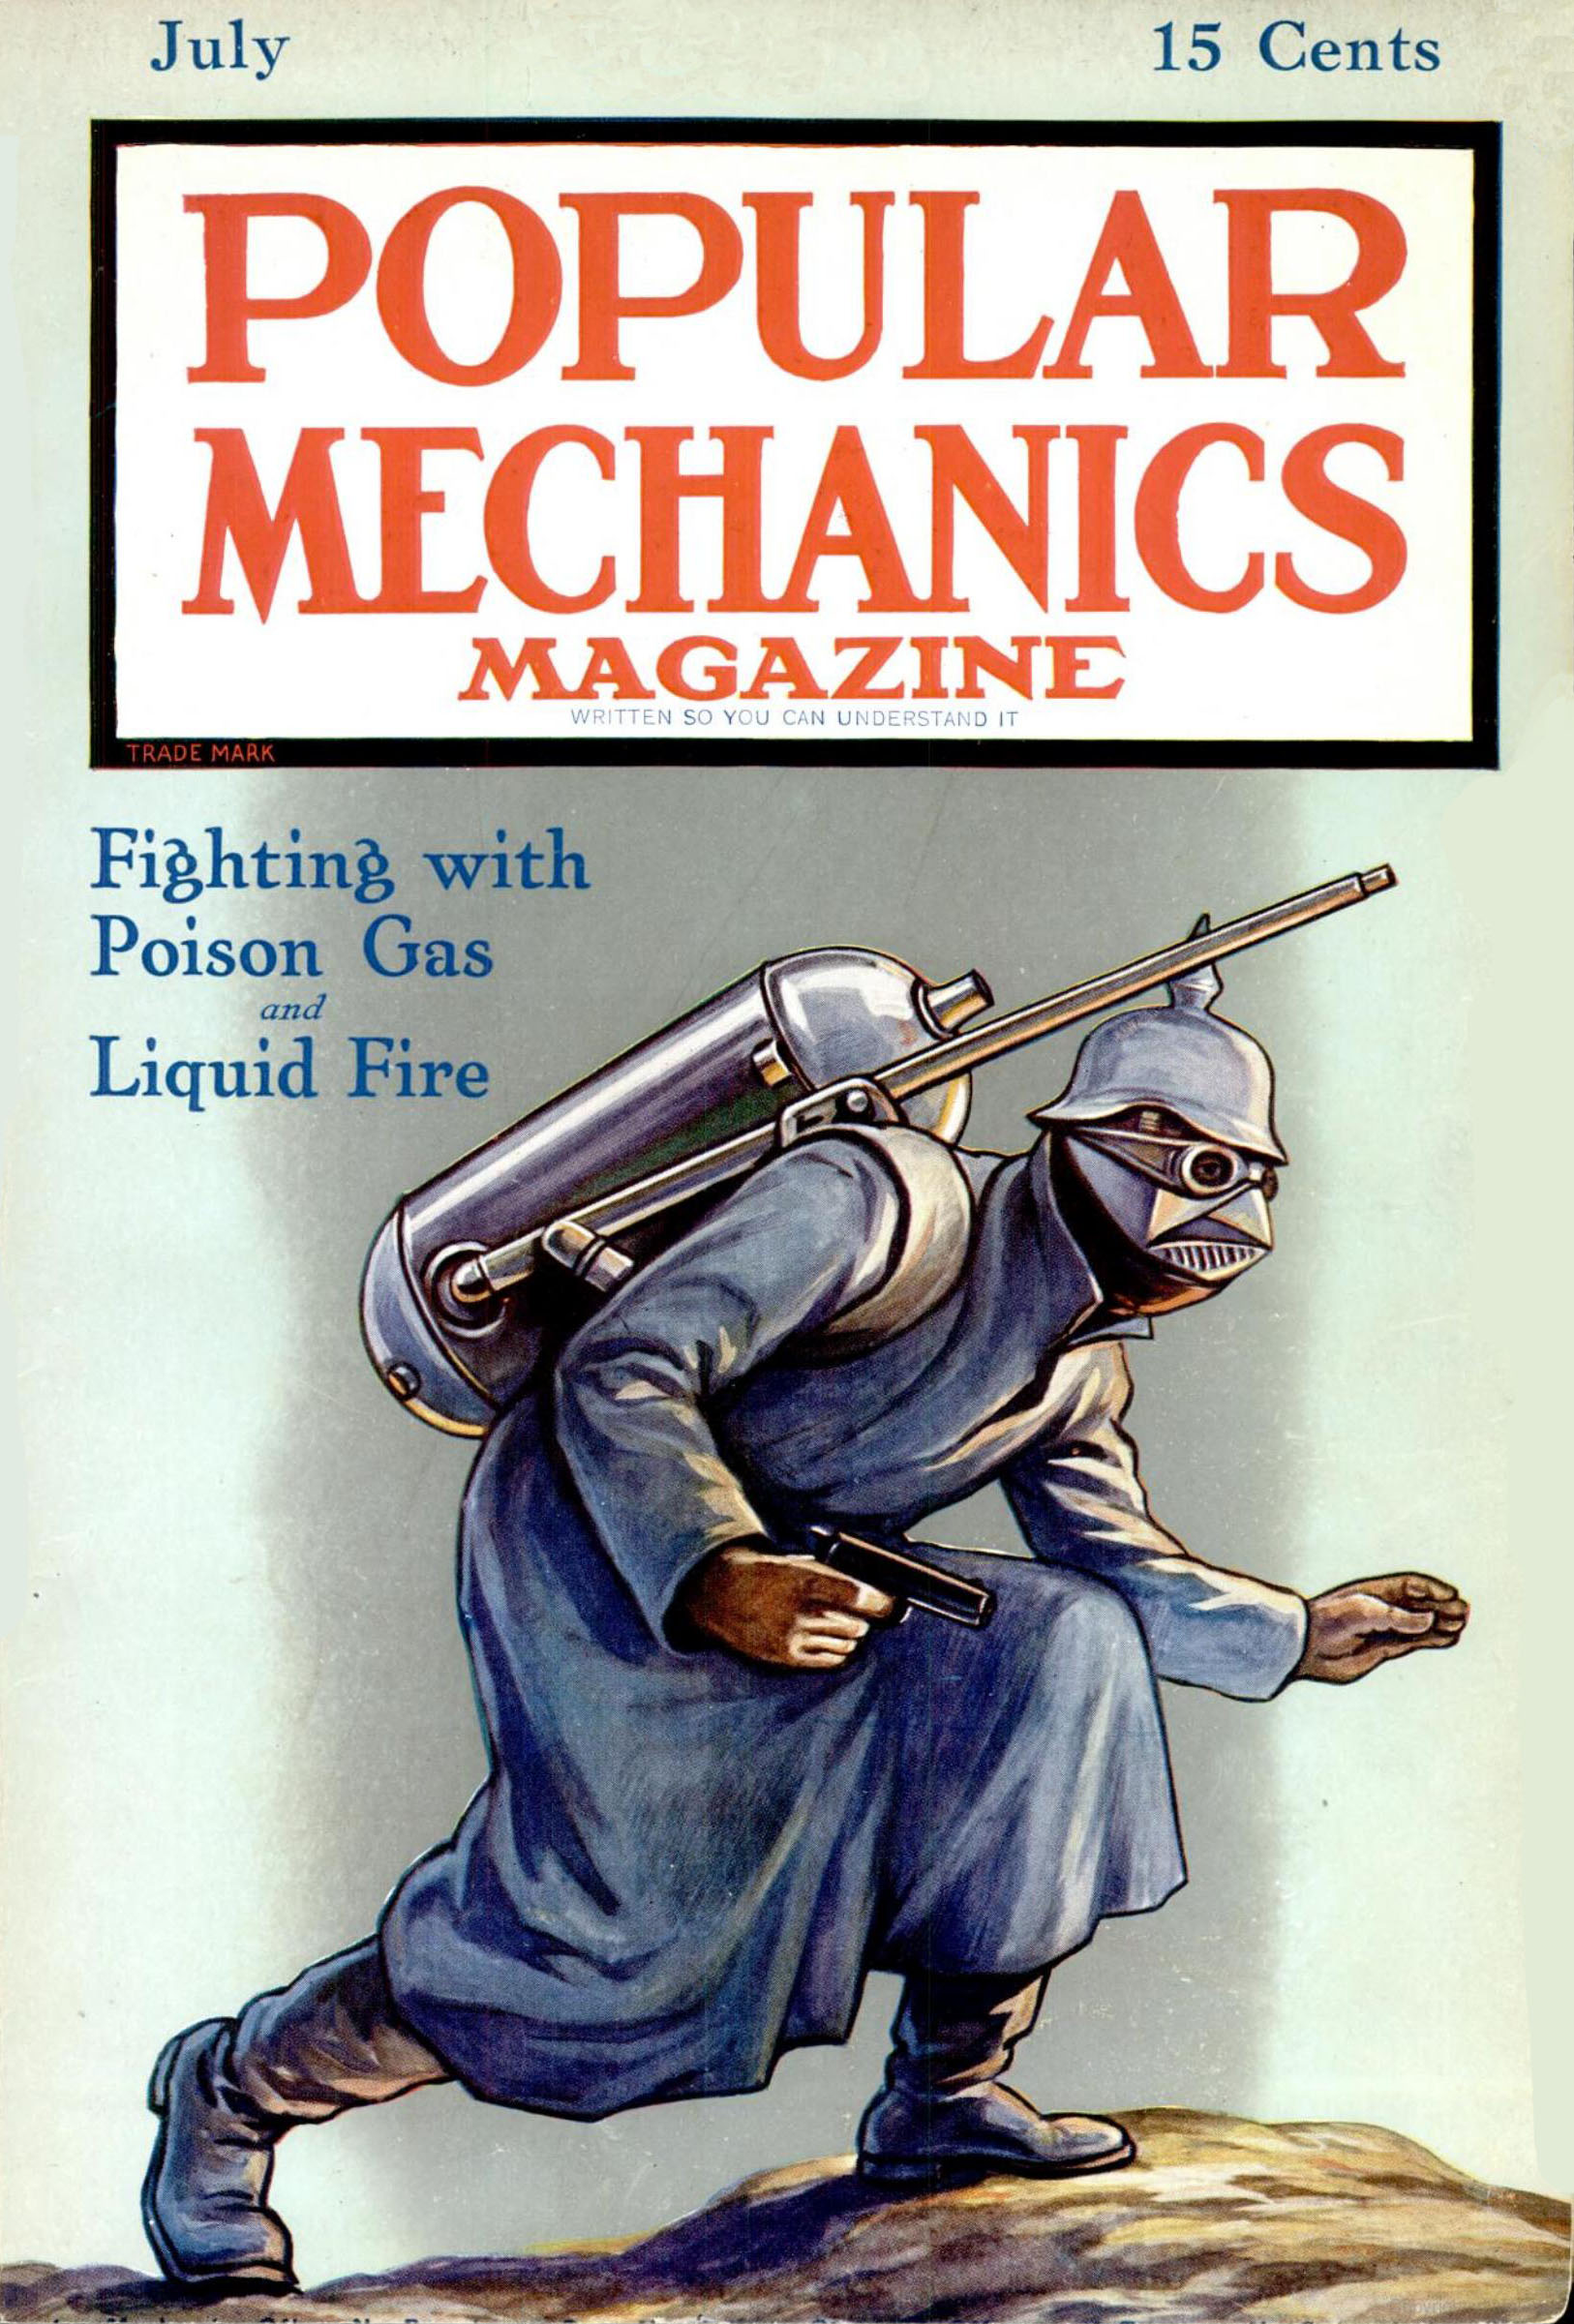 1935 magazines furthermore Heres A Terrifying Popular Mechanics Magazine Cover From World War I likewise Plumbing Faucets Fixtures Ants 15097655 additionally Indian Motorcycle 210911957 furthermore Watch. on vintage war ads